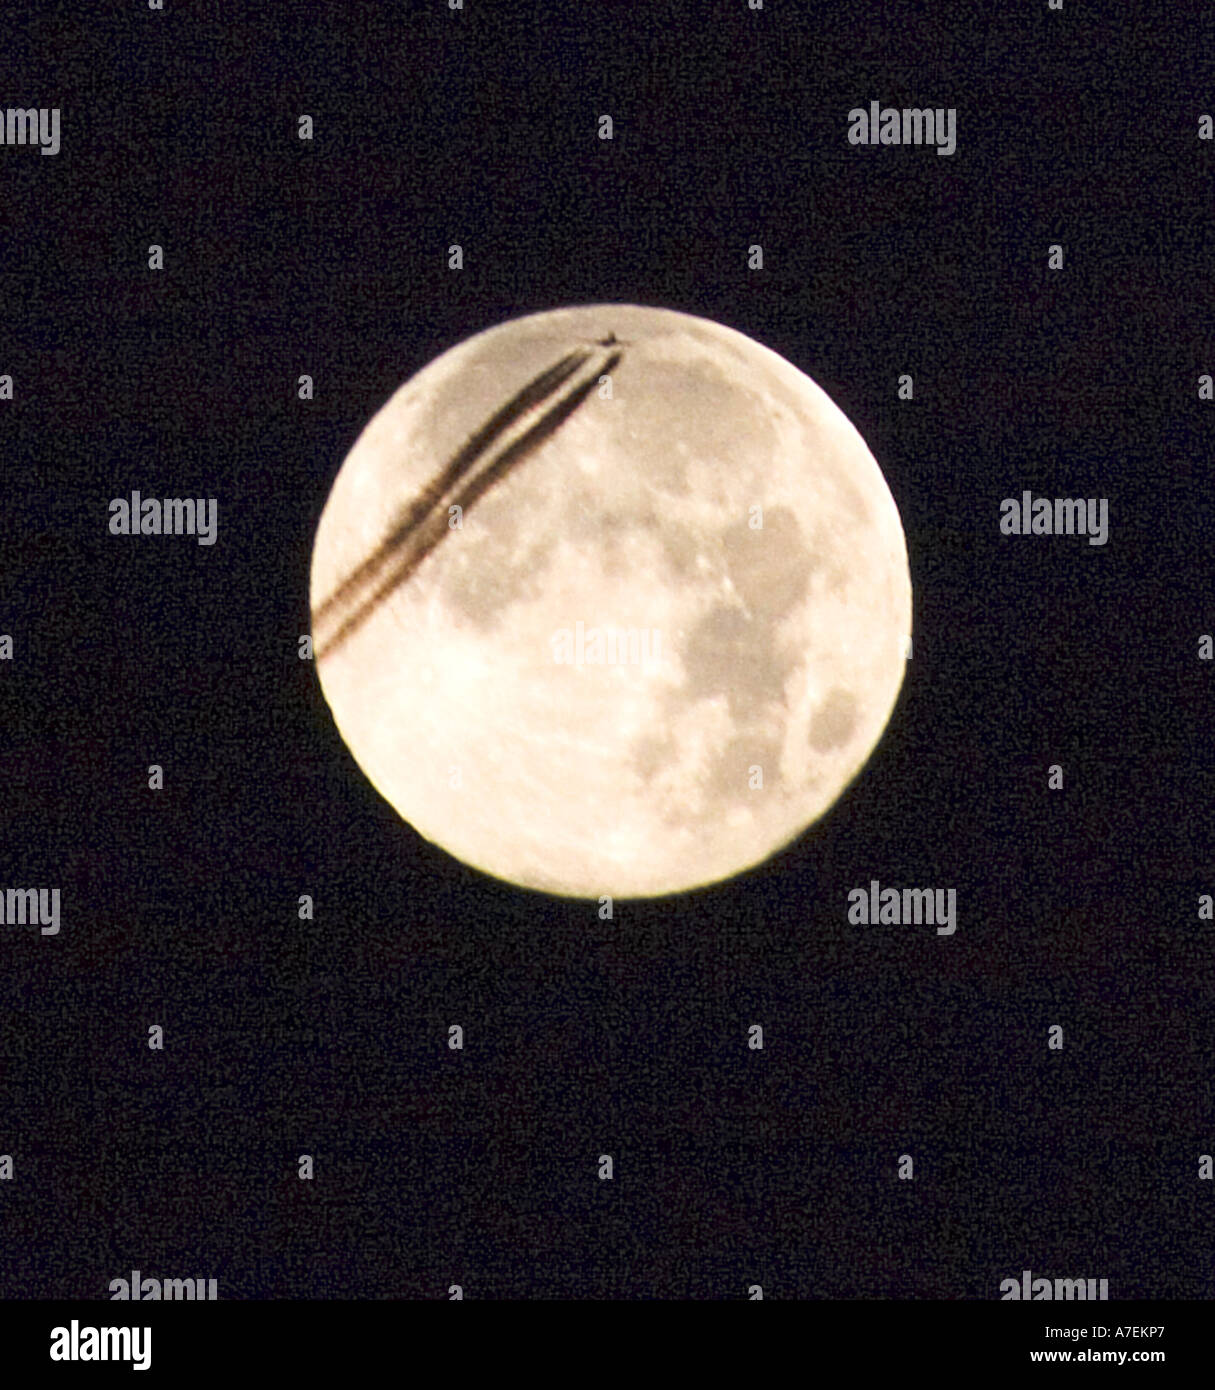 Jet airliner leaving twin vapour trails across the full moon - Stock Image